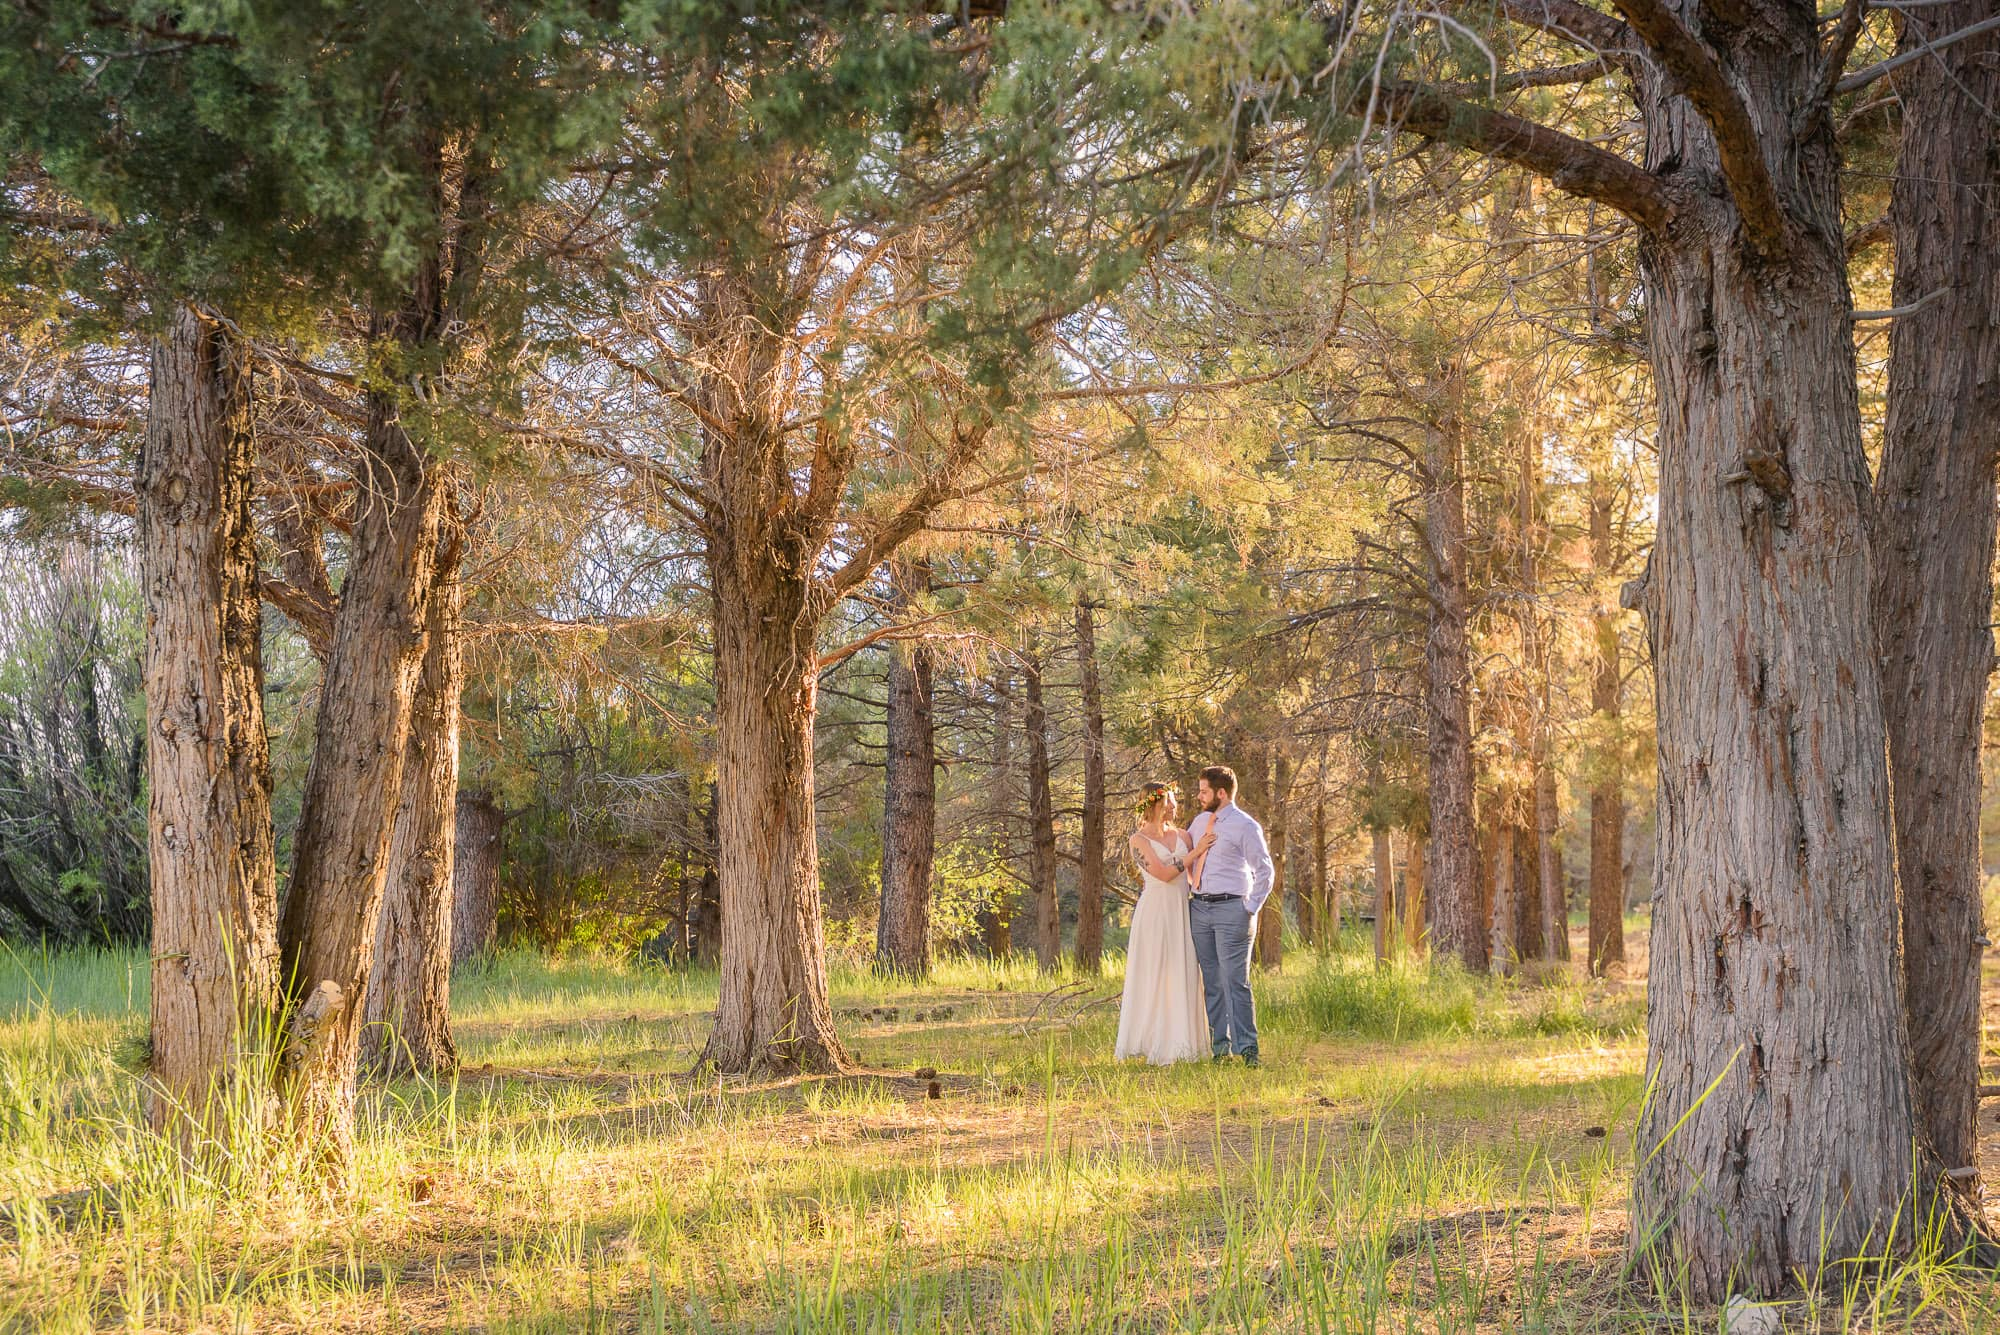 017_Alan_and_Heidi_Kensey_Josh_Big_Bear_Elopement